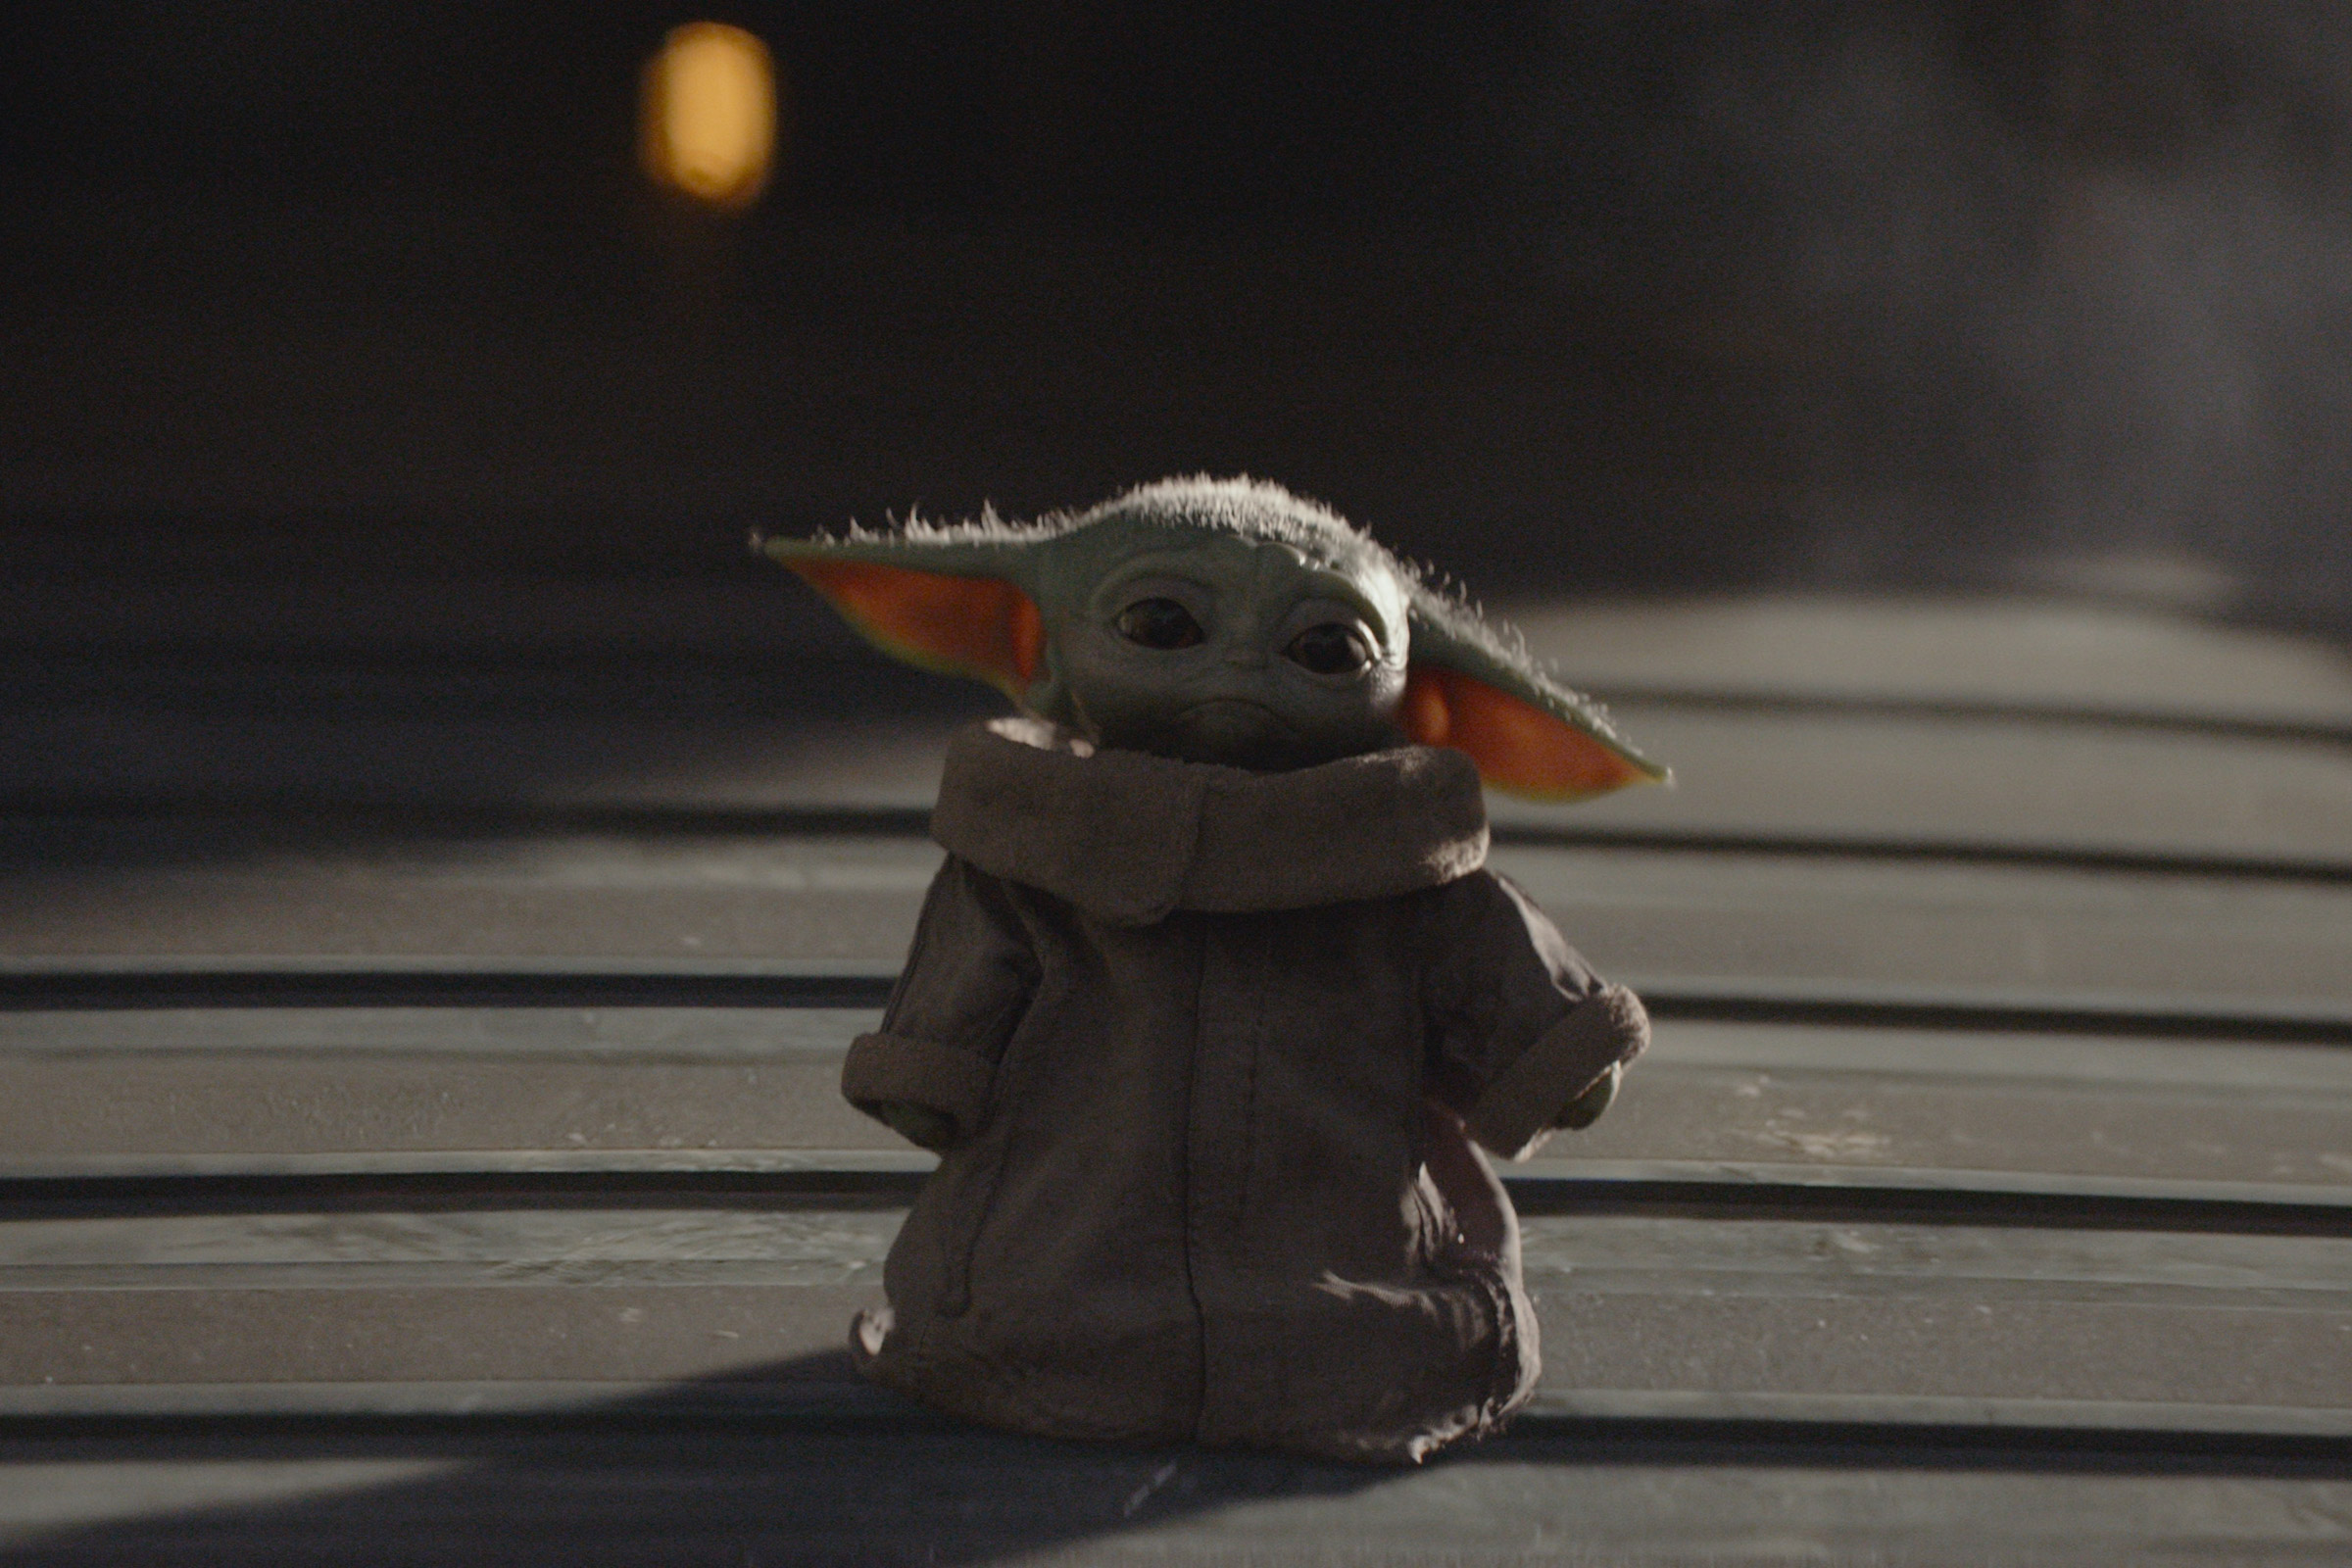 Baby Yoda Christmas Memes Are Here to Spread Good Cheer